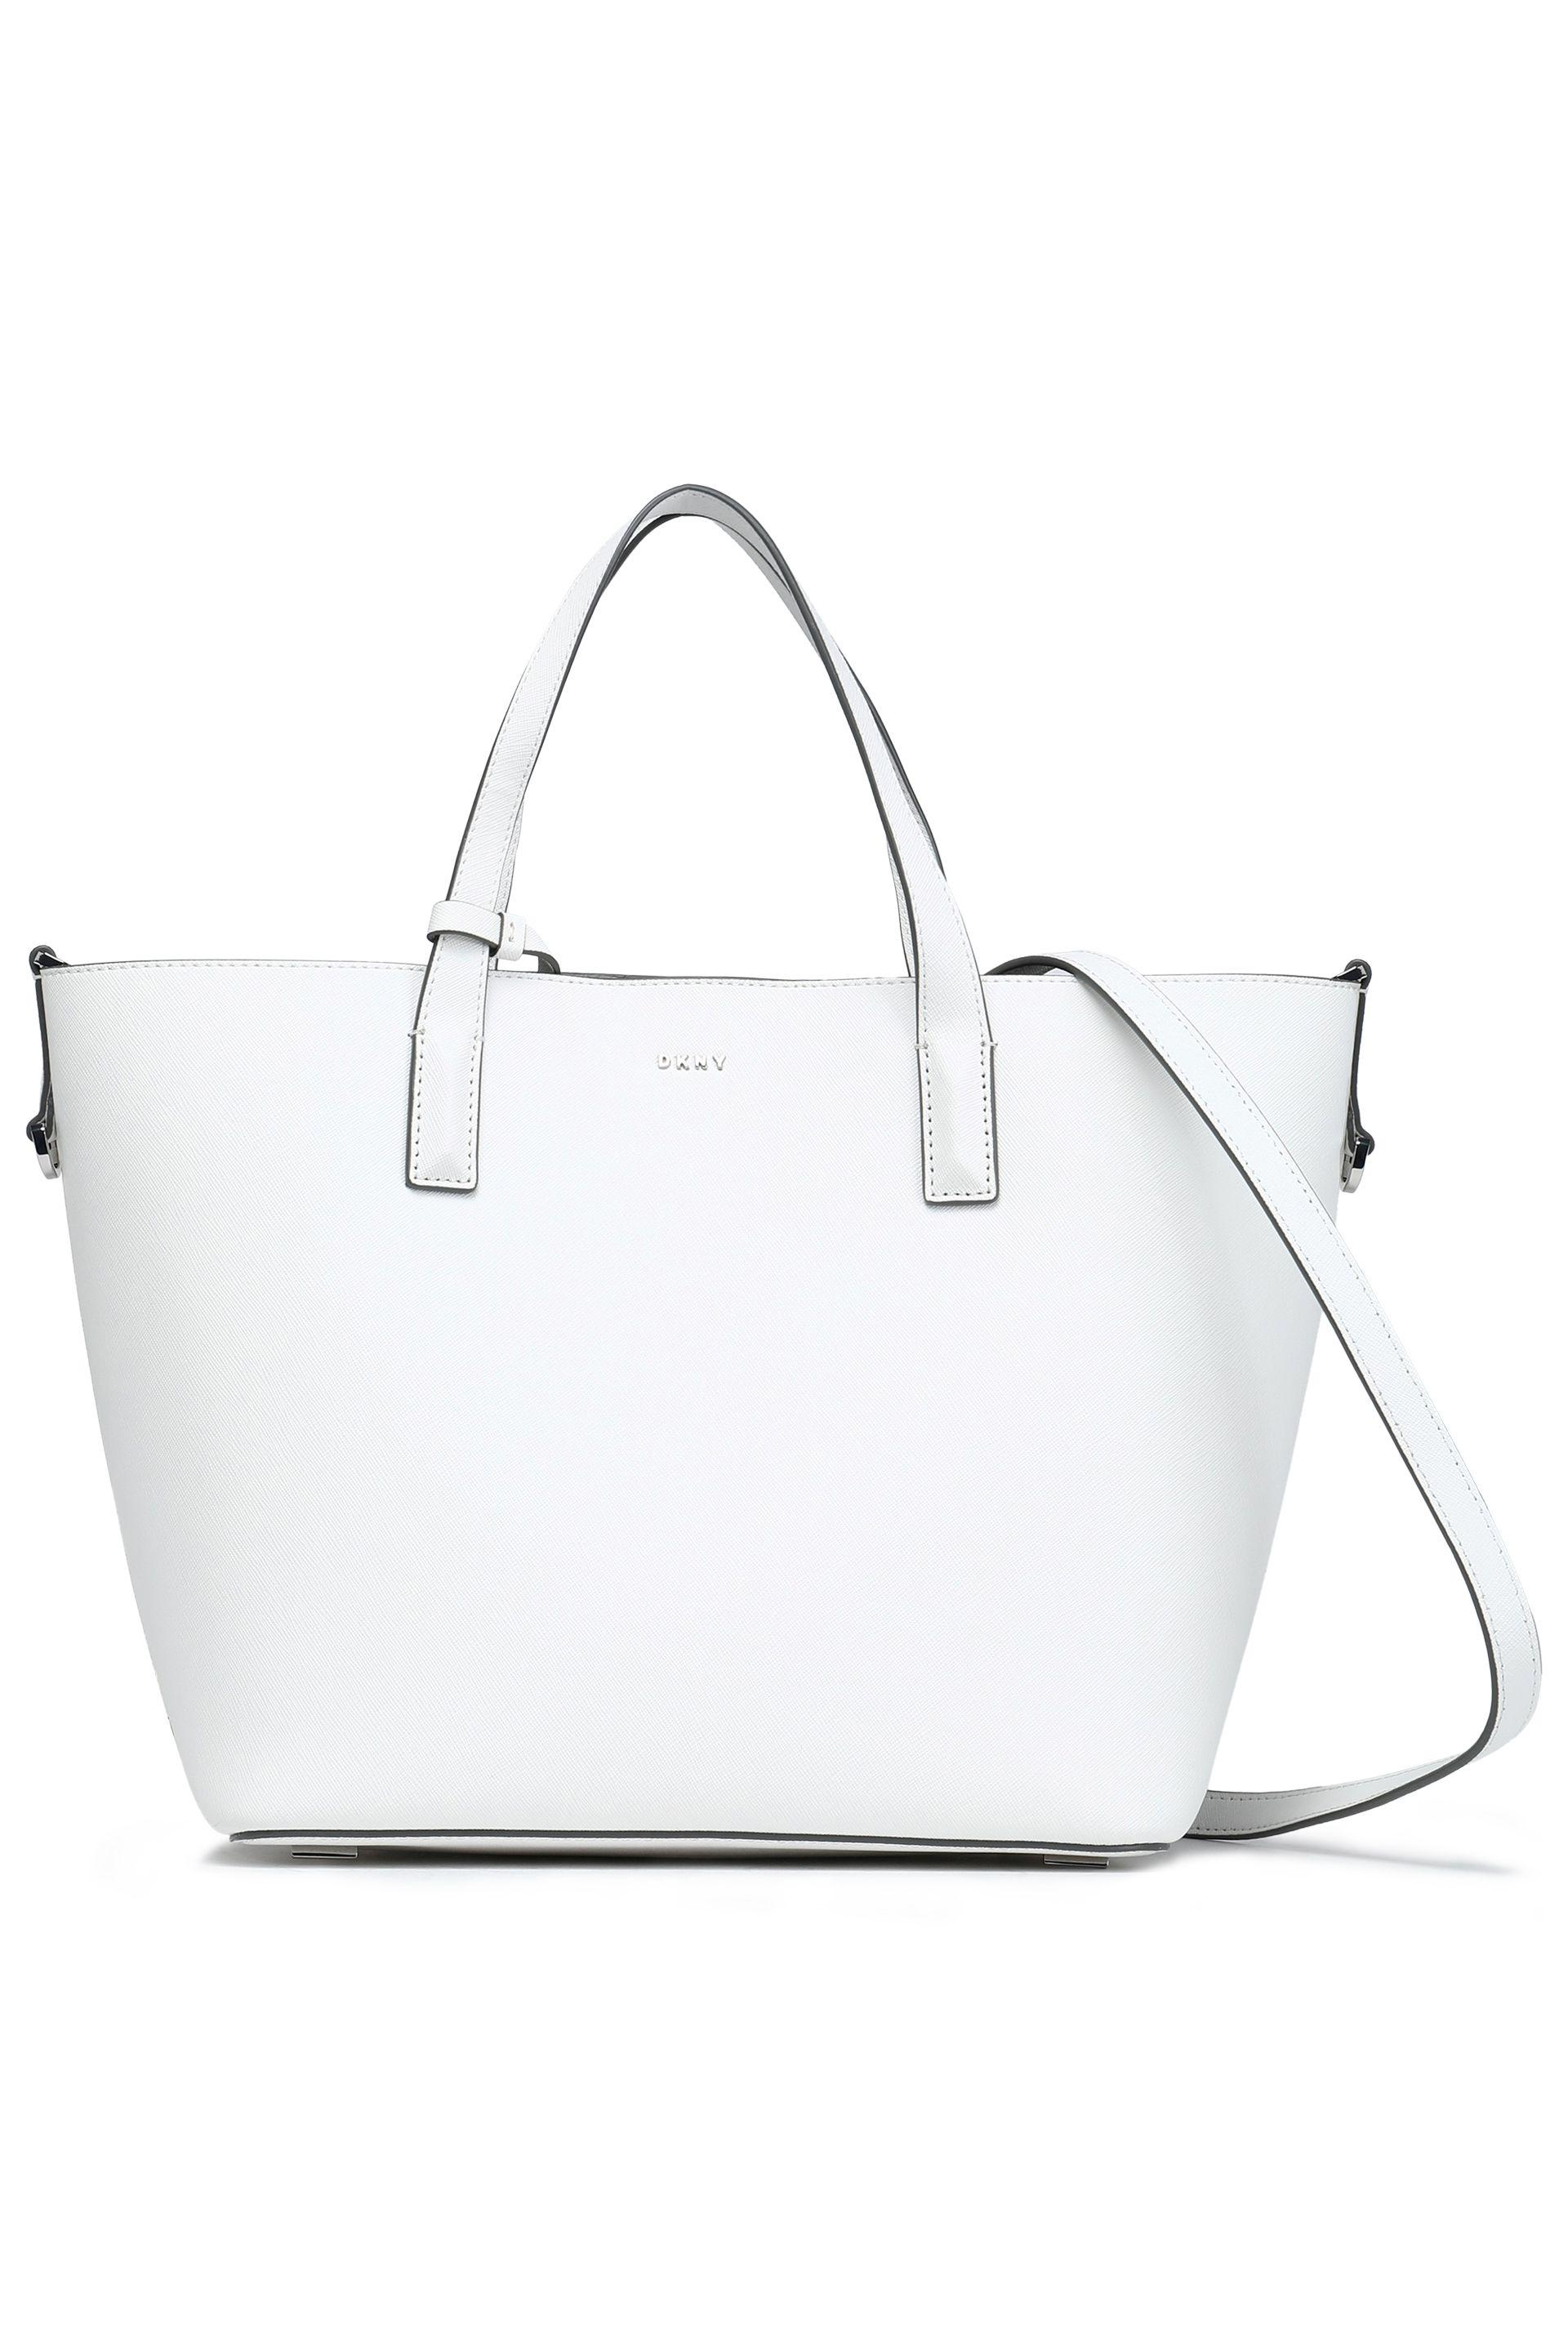 bb39dbed87e2 Dkny Leather Tote in White - Lyst